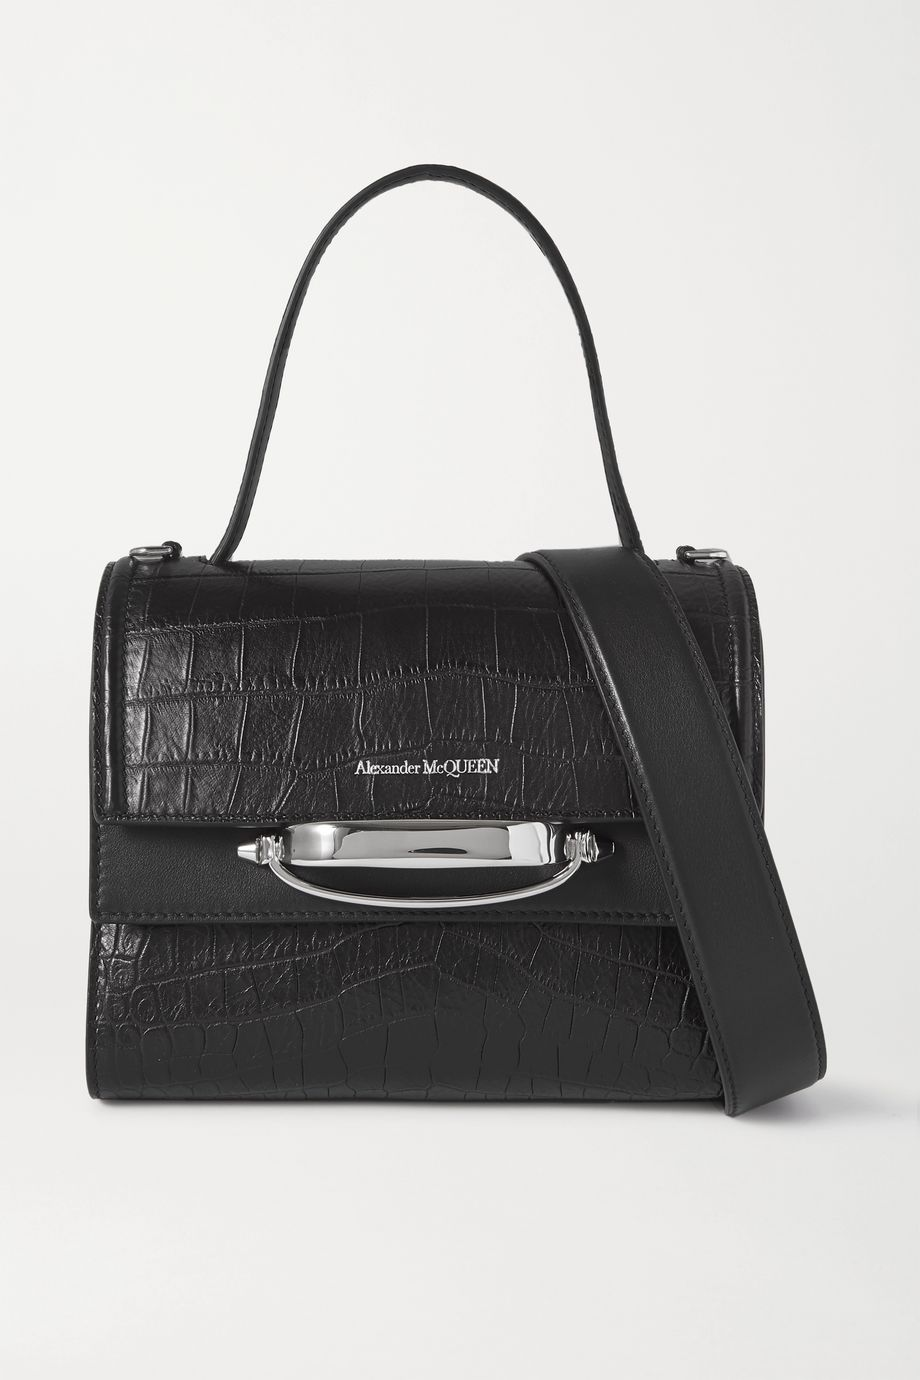 Alexander McQueen Story small croc-effect leather shoulder bag